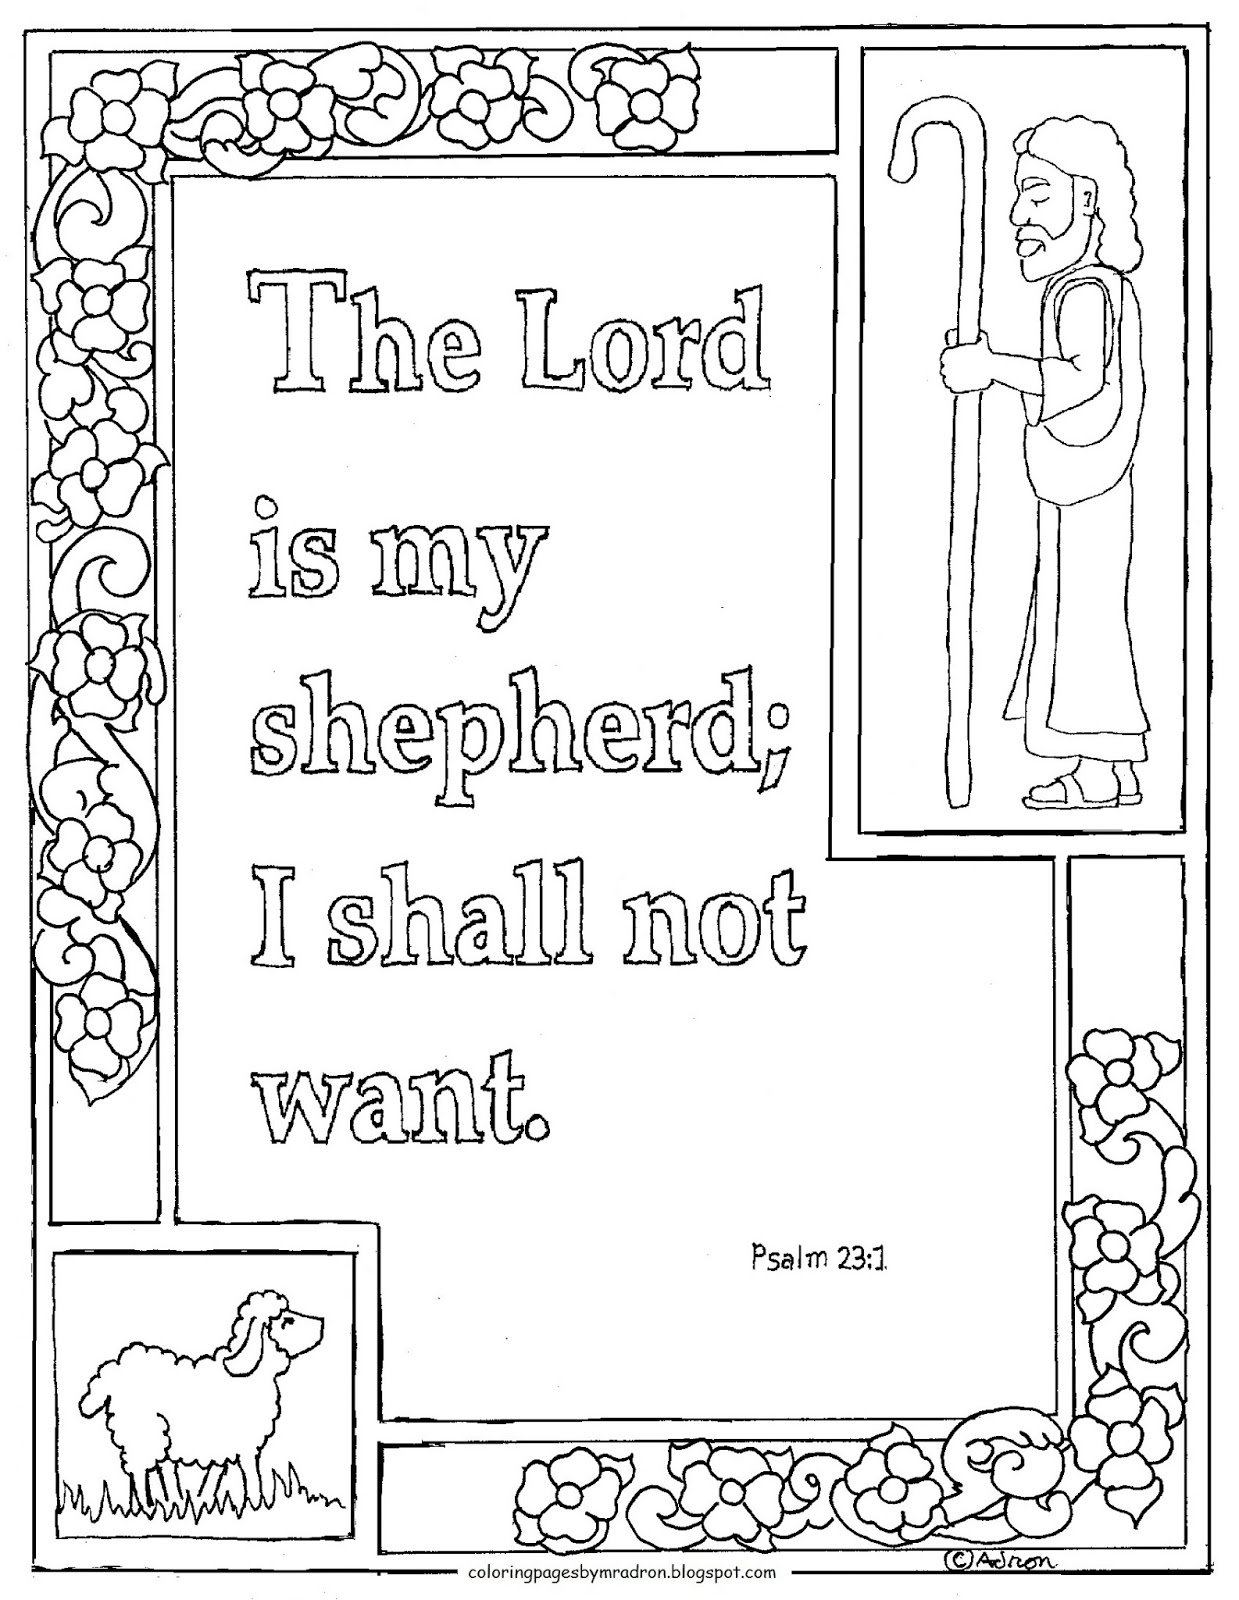 psalm 23 coloring page - printable psalm 231 lord is my shepherd